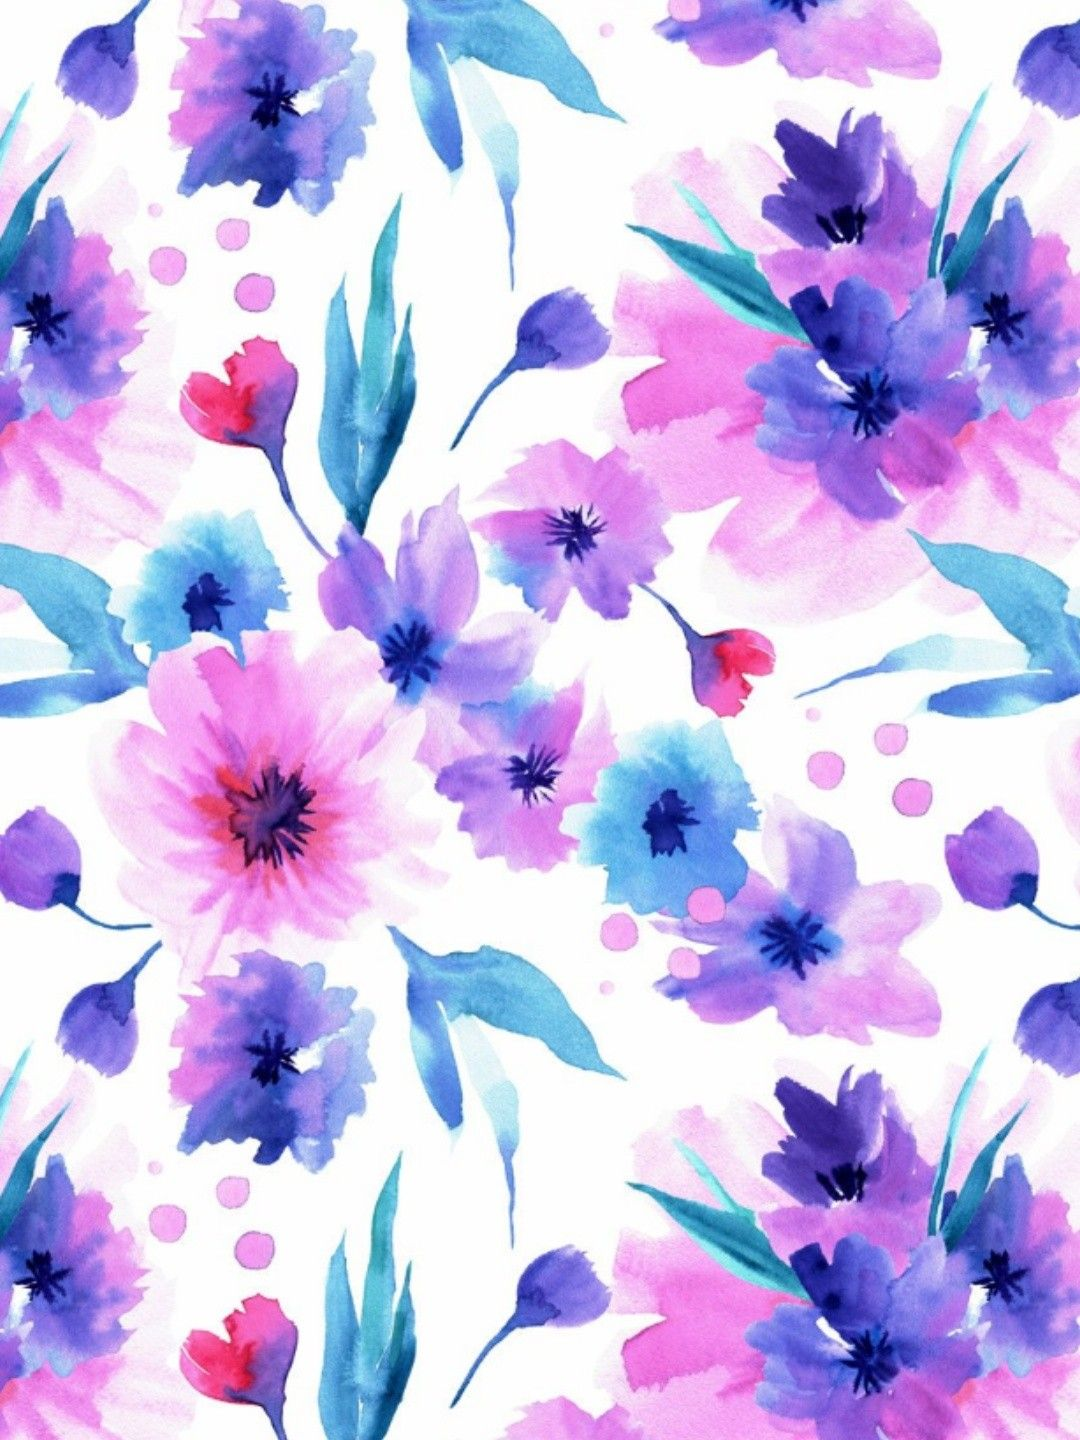 Watercolor Seamless Patterns with Pink and Purple flowers | Purple flowers wallpaper, Floral ...